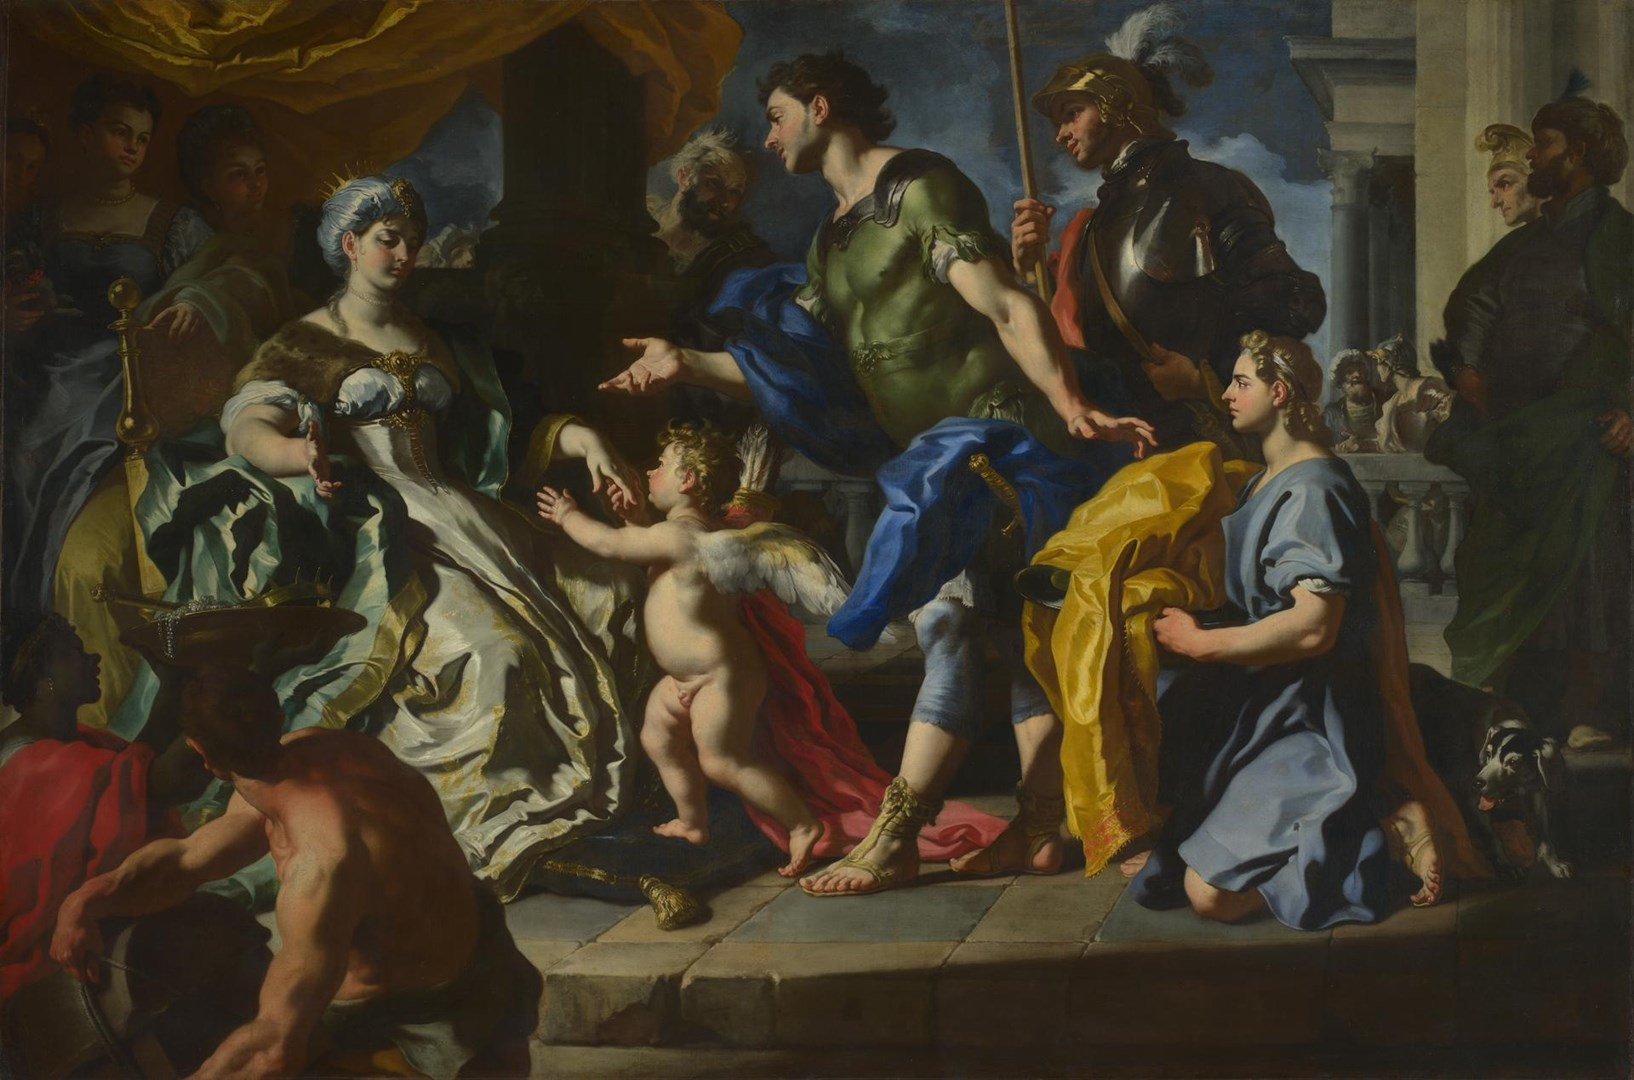 Dido receiving Aeneas and Cupid disguised as Ascanius by Francesco Solimena